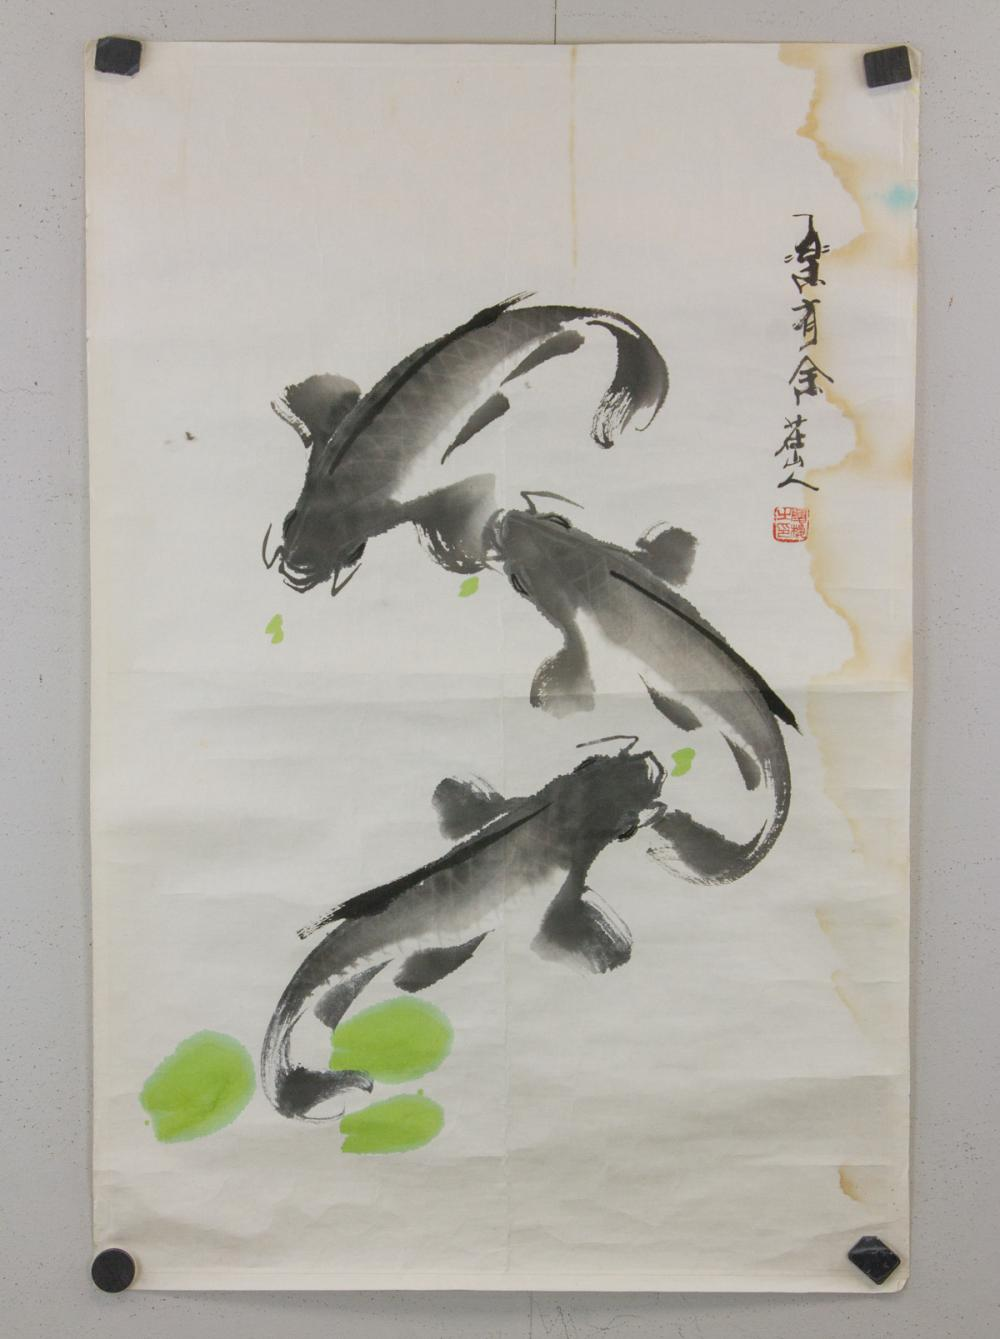 Lot 181: Zhuang Shanren 20th C. Chinese Watercolor Roll